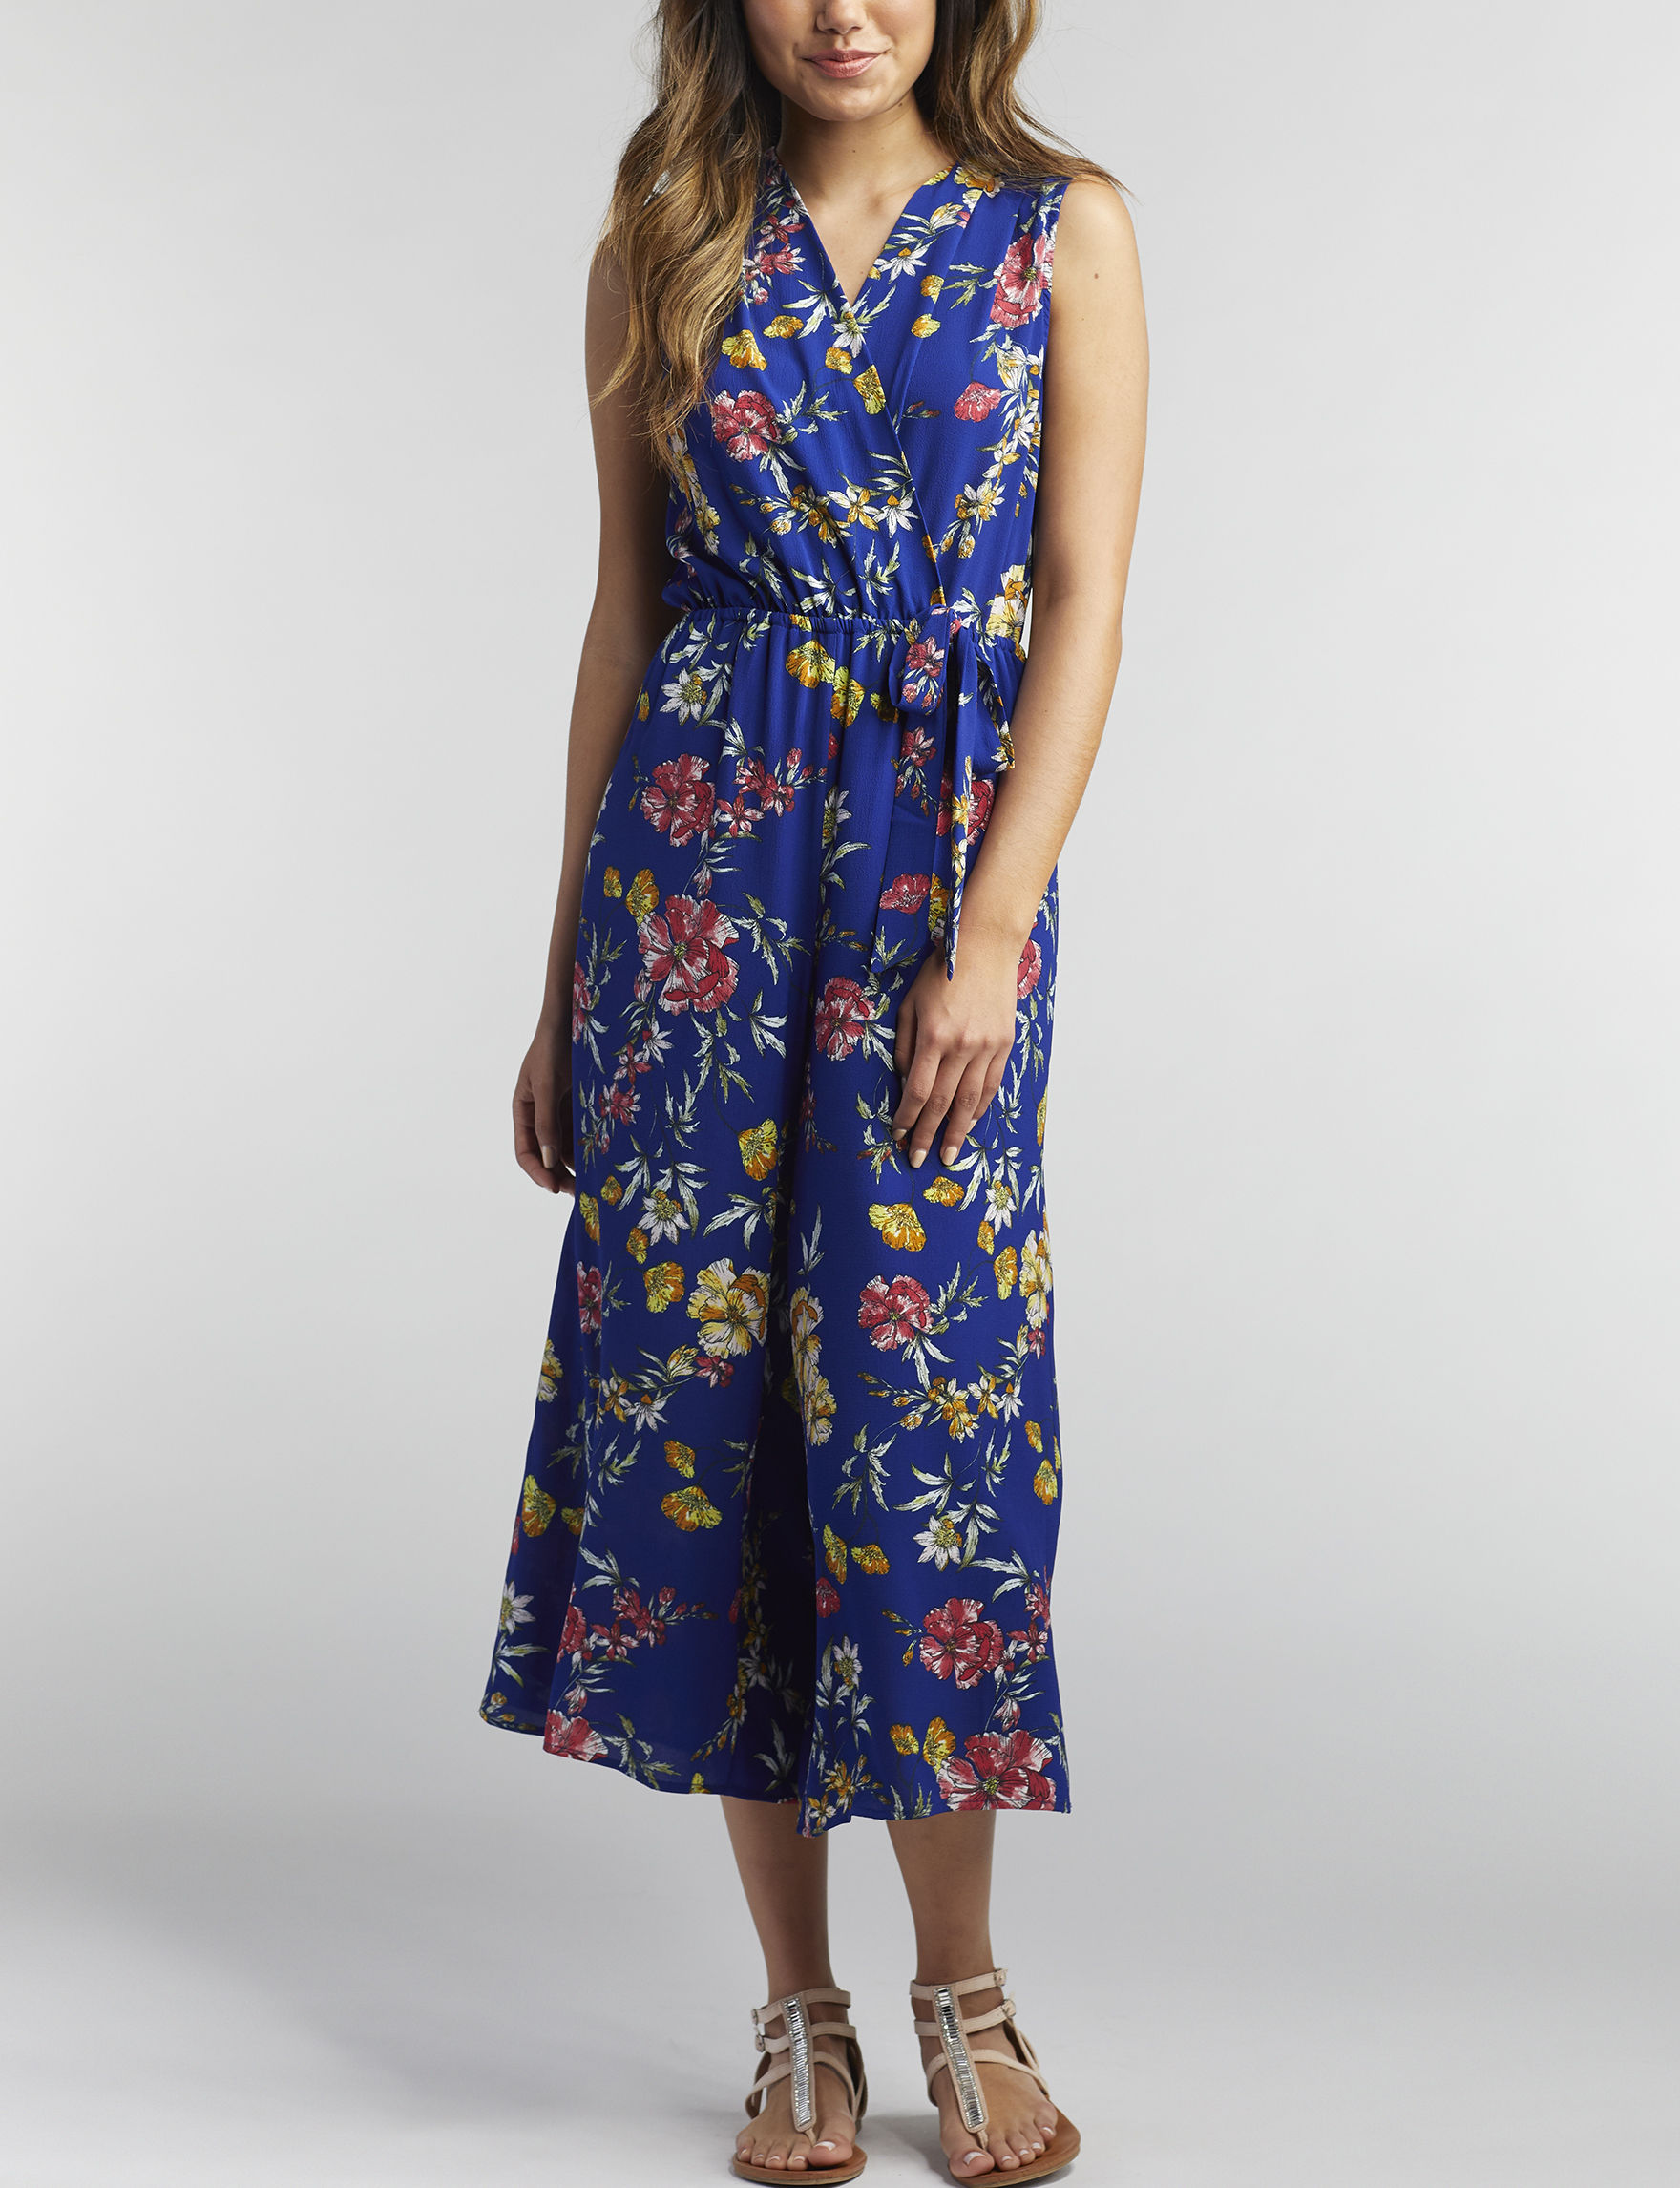 Wishful Park Navy Floral Cocktail & Party Everyday & Casual